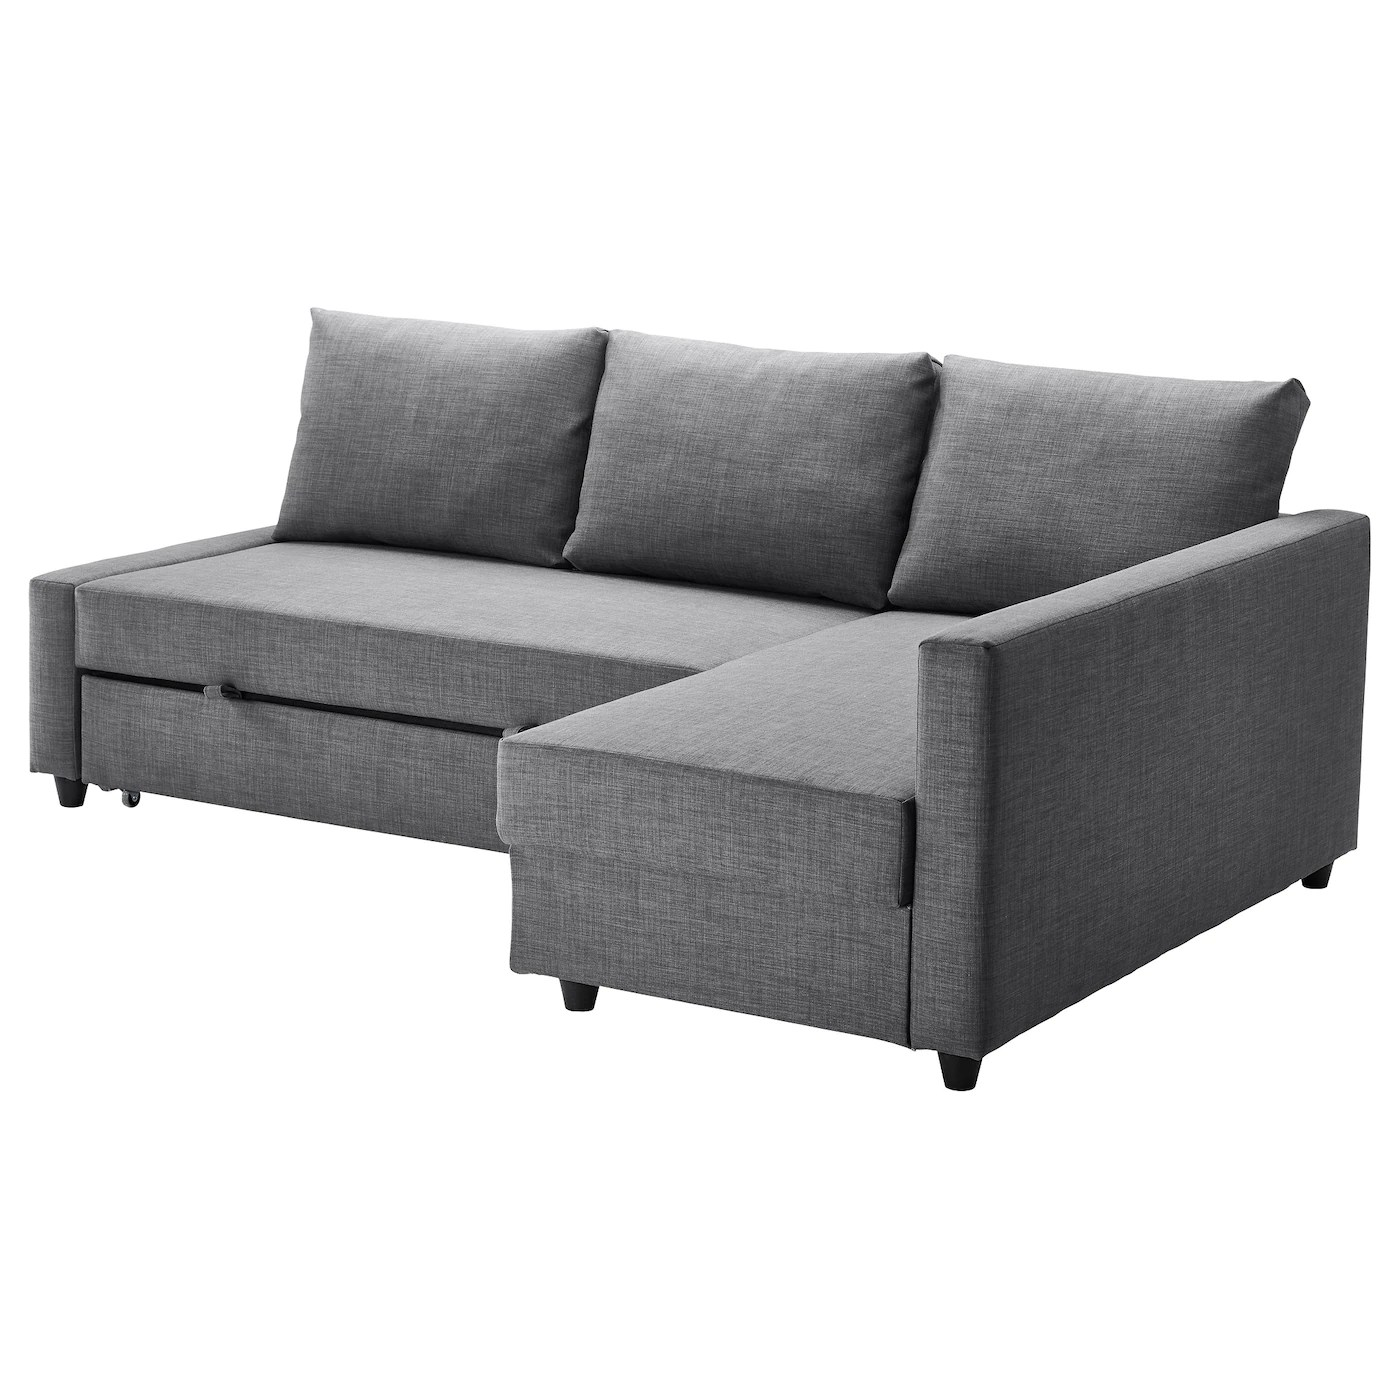 corner sofa bed oslo mini storage container sleep function new comfortable sofas for sale beds ikea ireland dublin friheten with chaise longue and double in